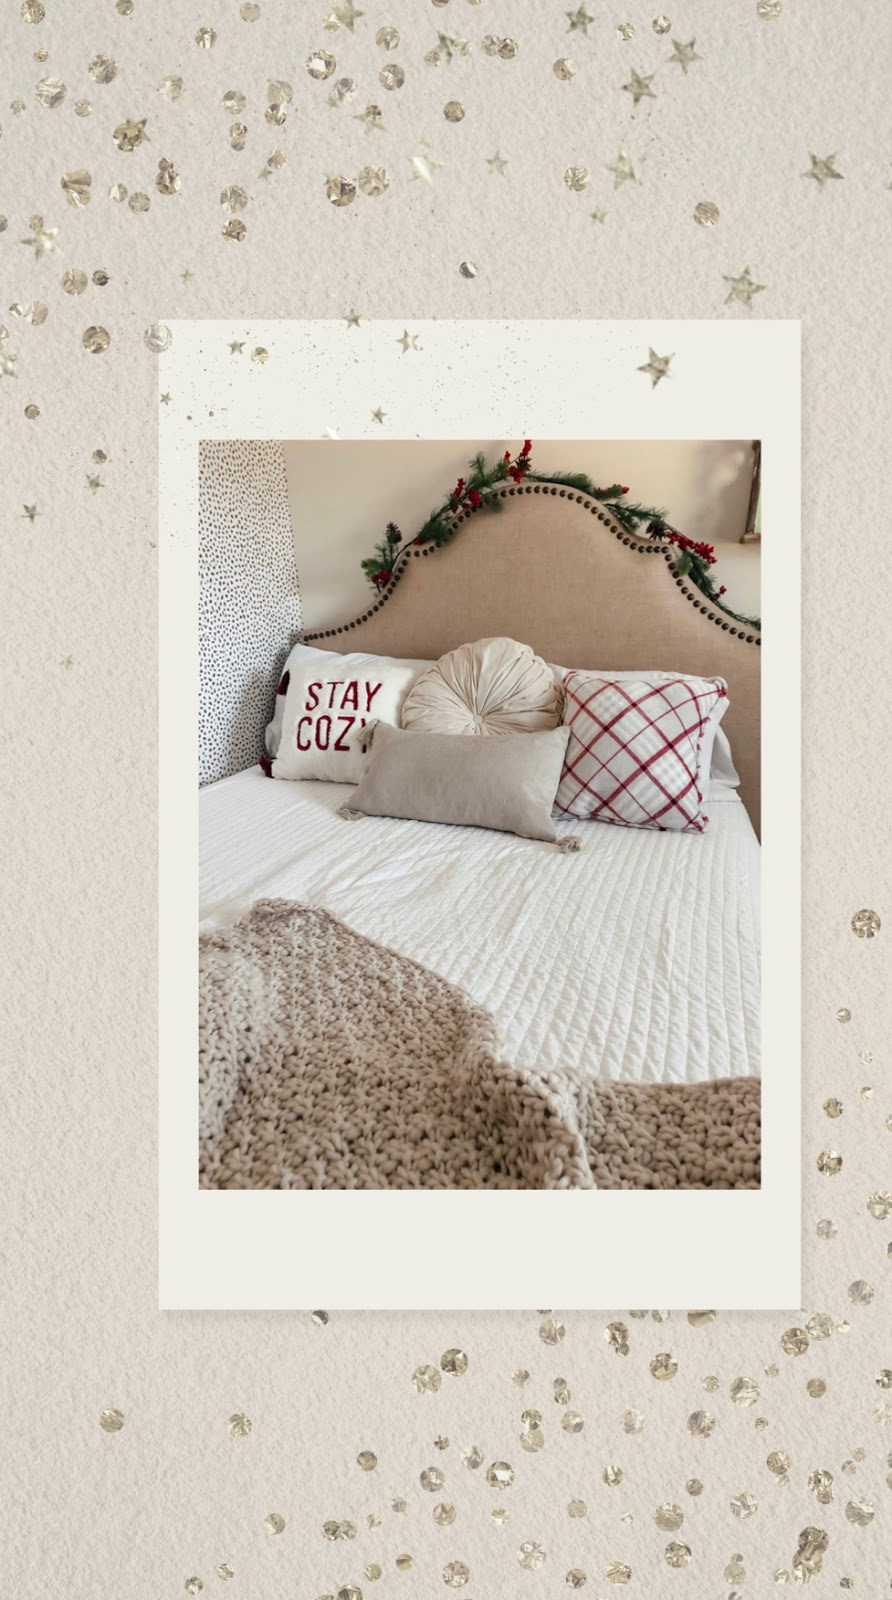 How I Decorated My Bedroom For Christmas 2019 | Affordable by Amanda Home Decor for The Holidays Inspiration Under $100